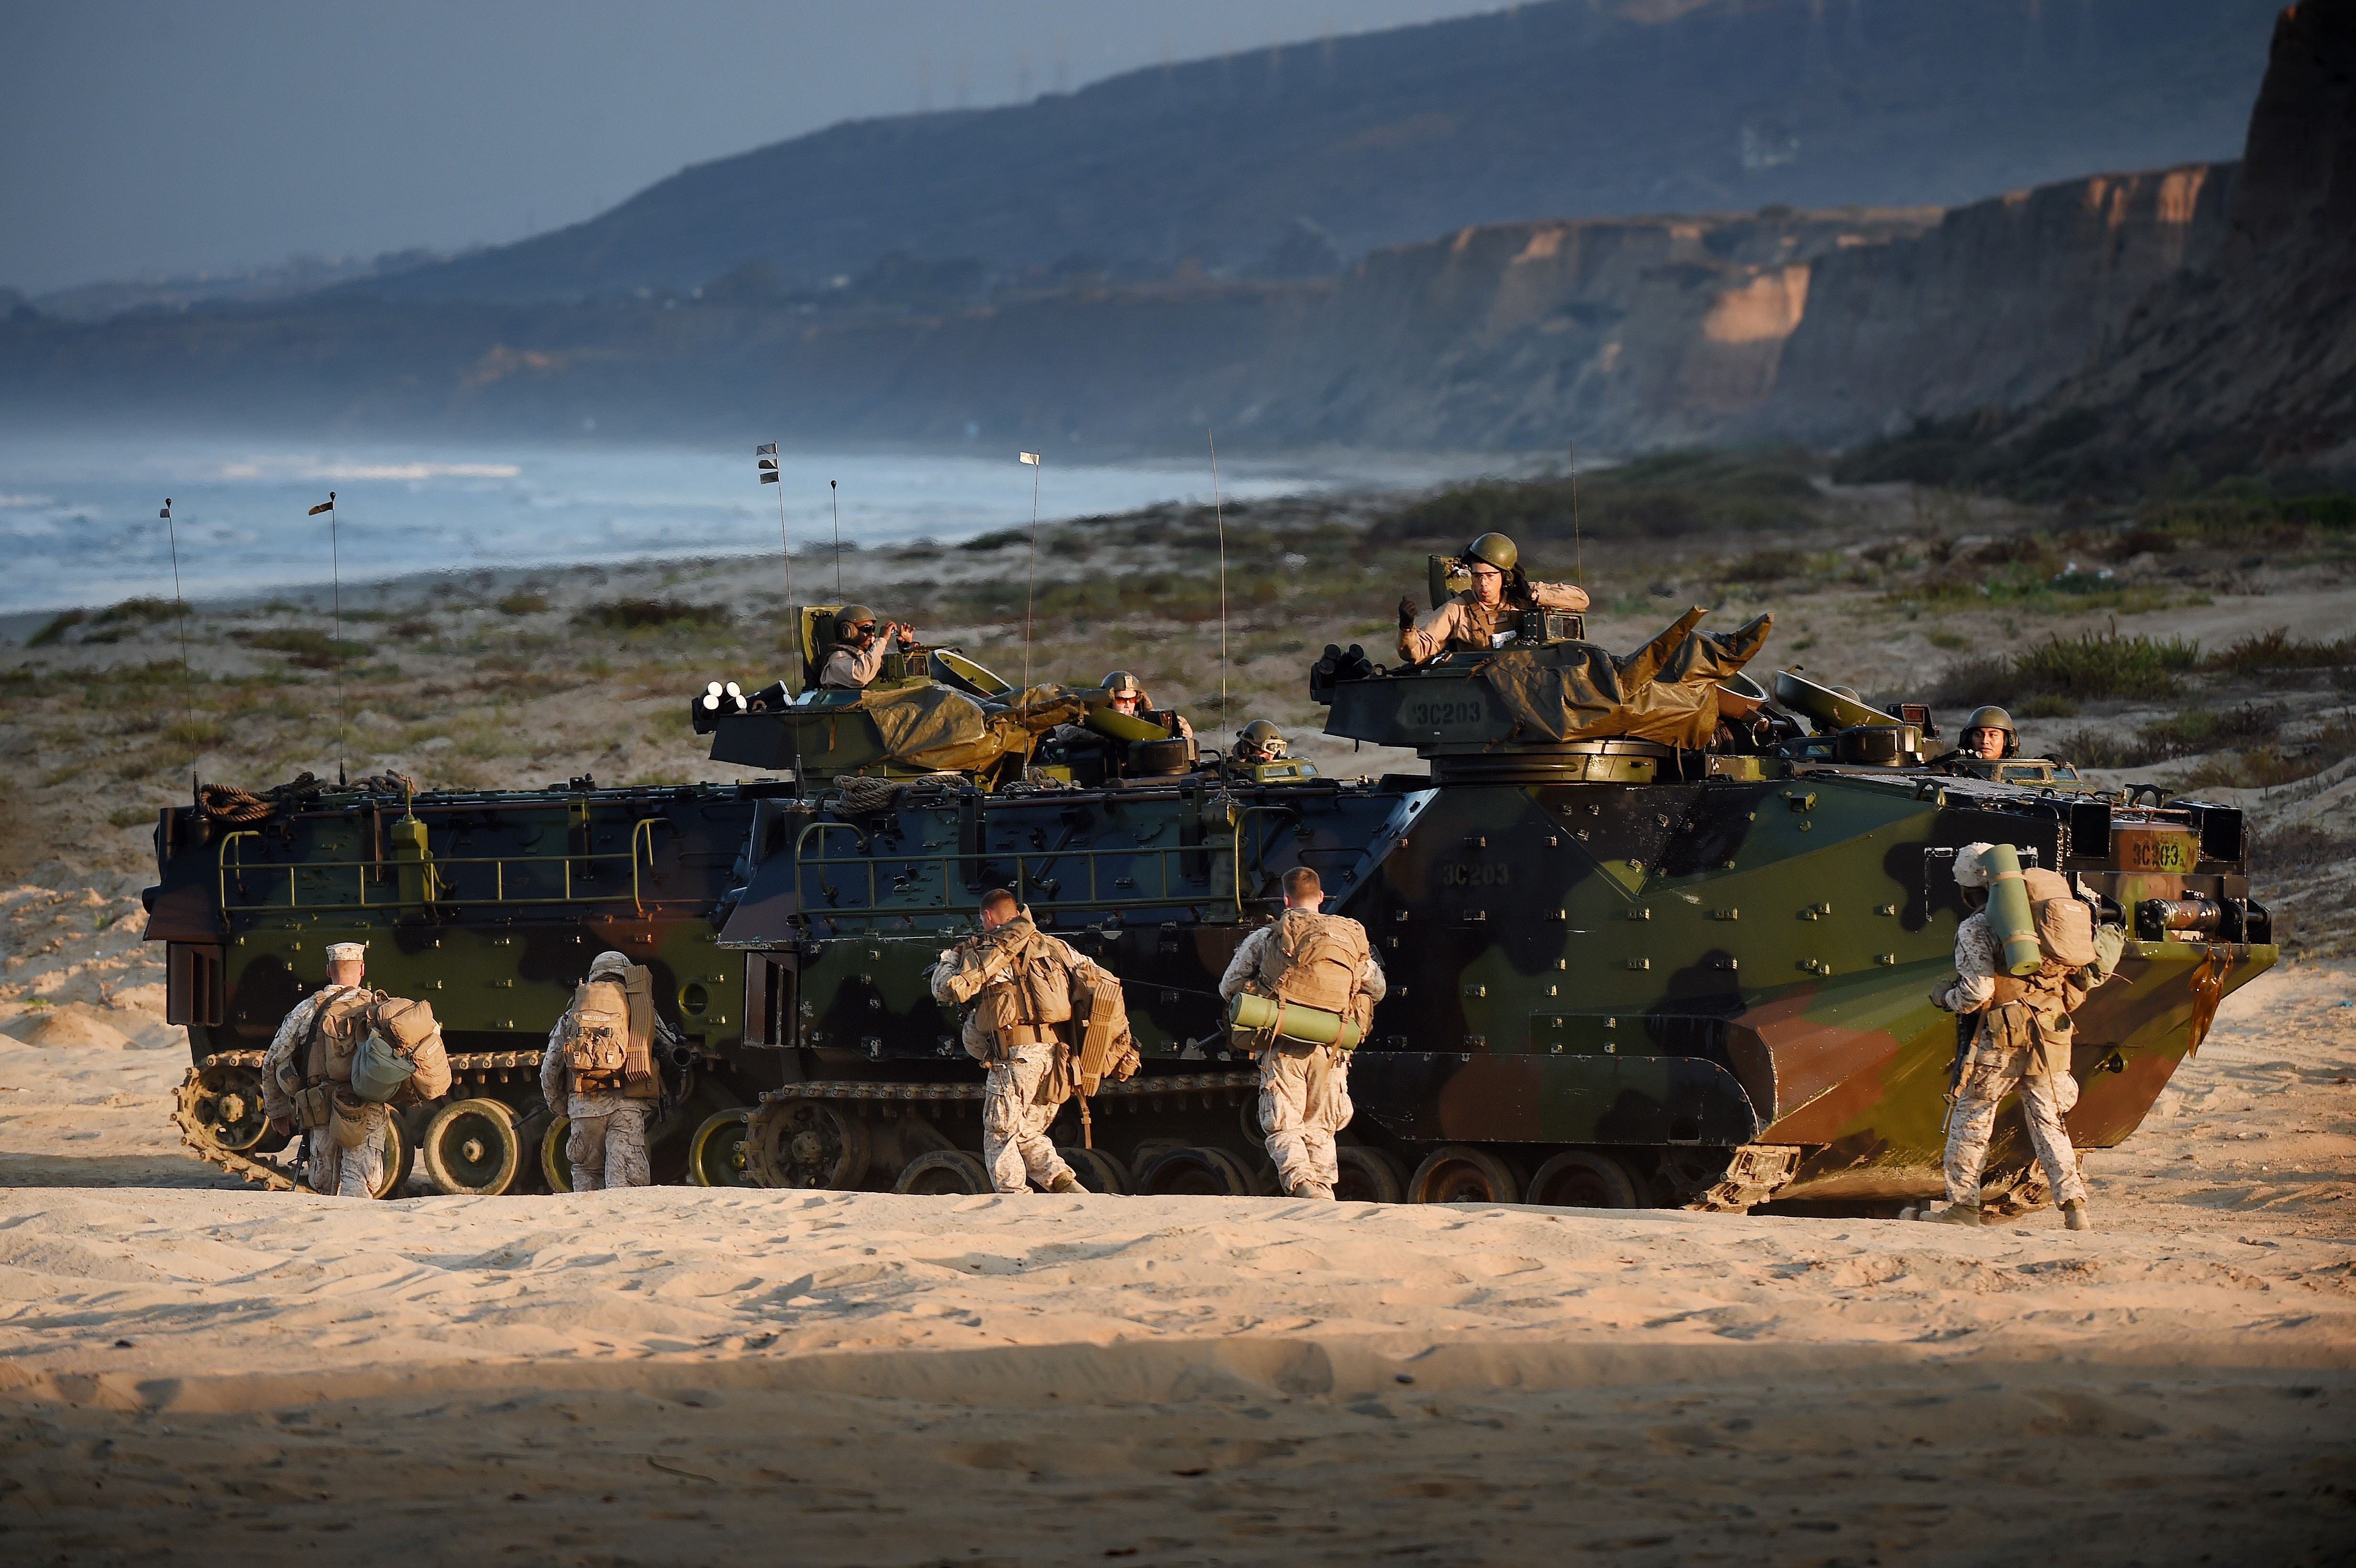 US Marines take their positions during an amphibious landing operation at the Dawn Blitz 2015 exercise in Camp Pendleton, California on September 5, 2015. (Photo by MARK RALSTON/AFP/Getty Images)